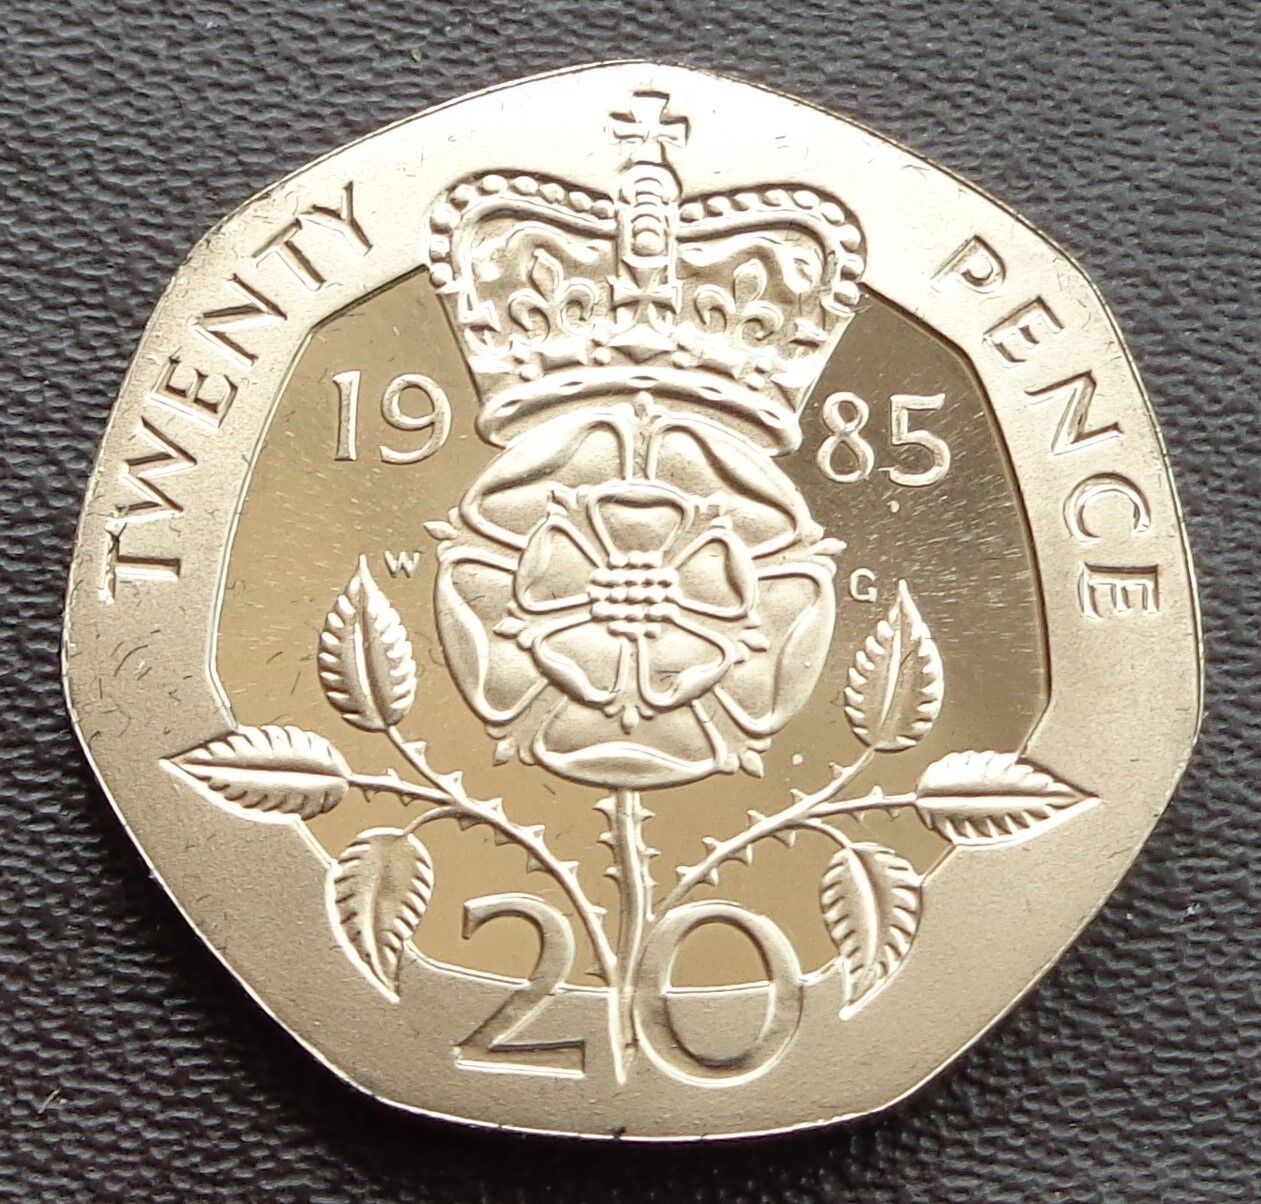 1983 - 2018 Elizabeth II 20p Twenty Decimal Proof Coin - Choose Your Year